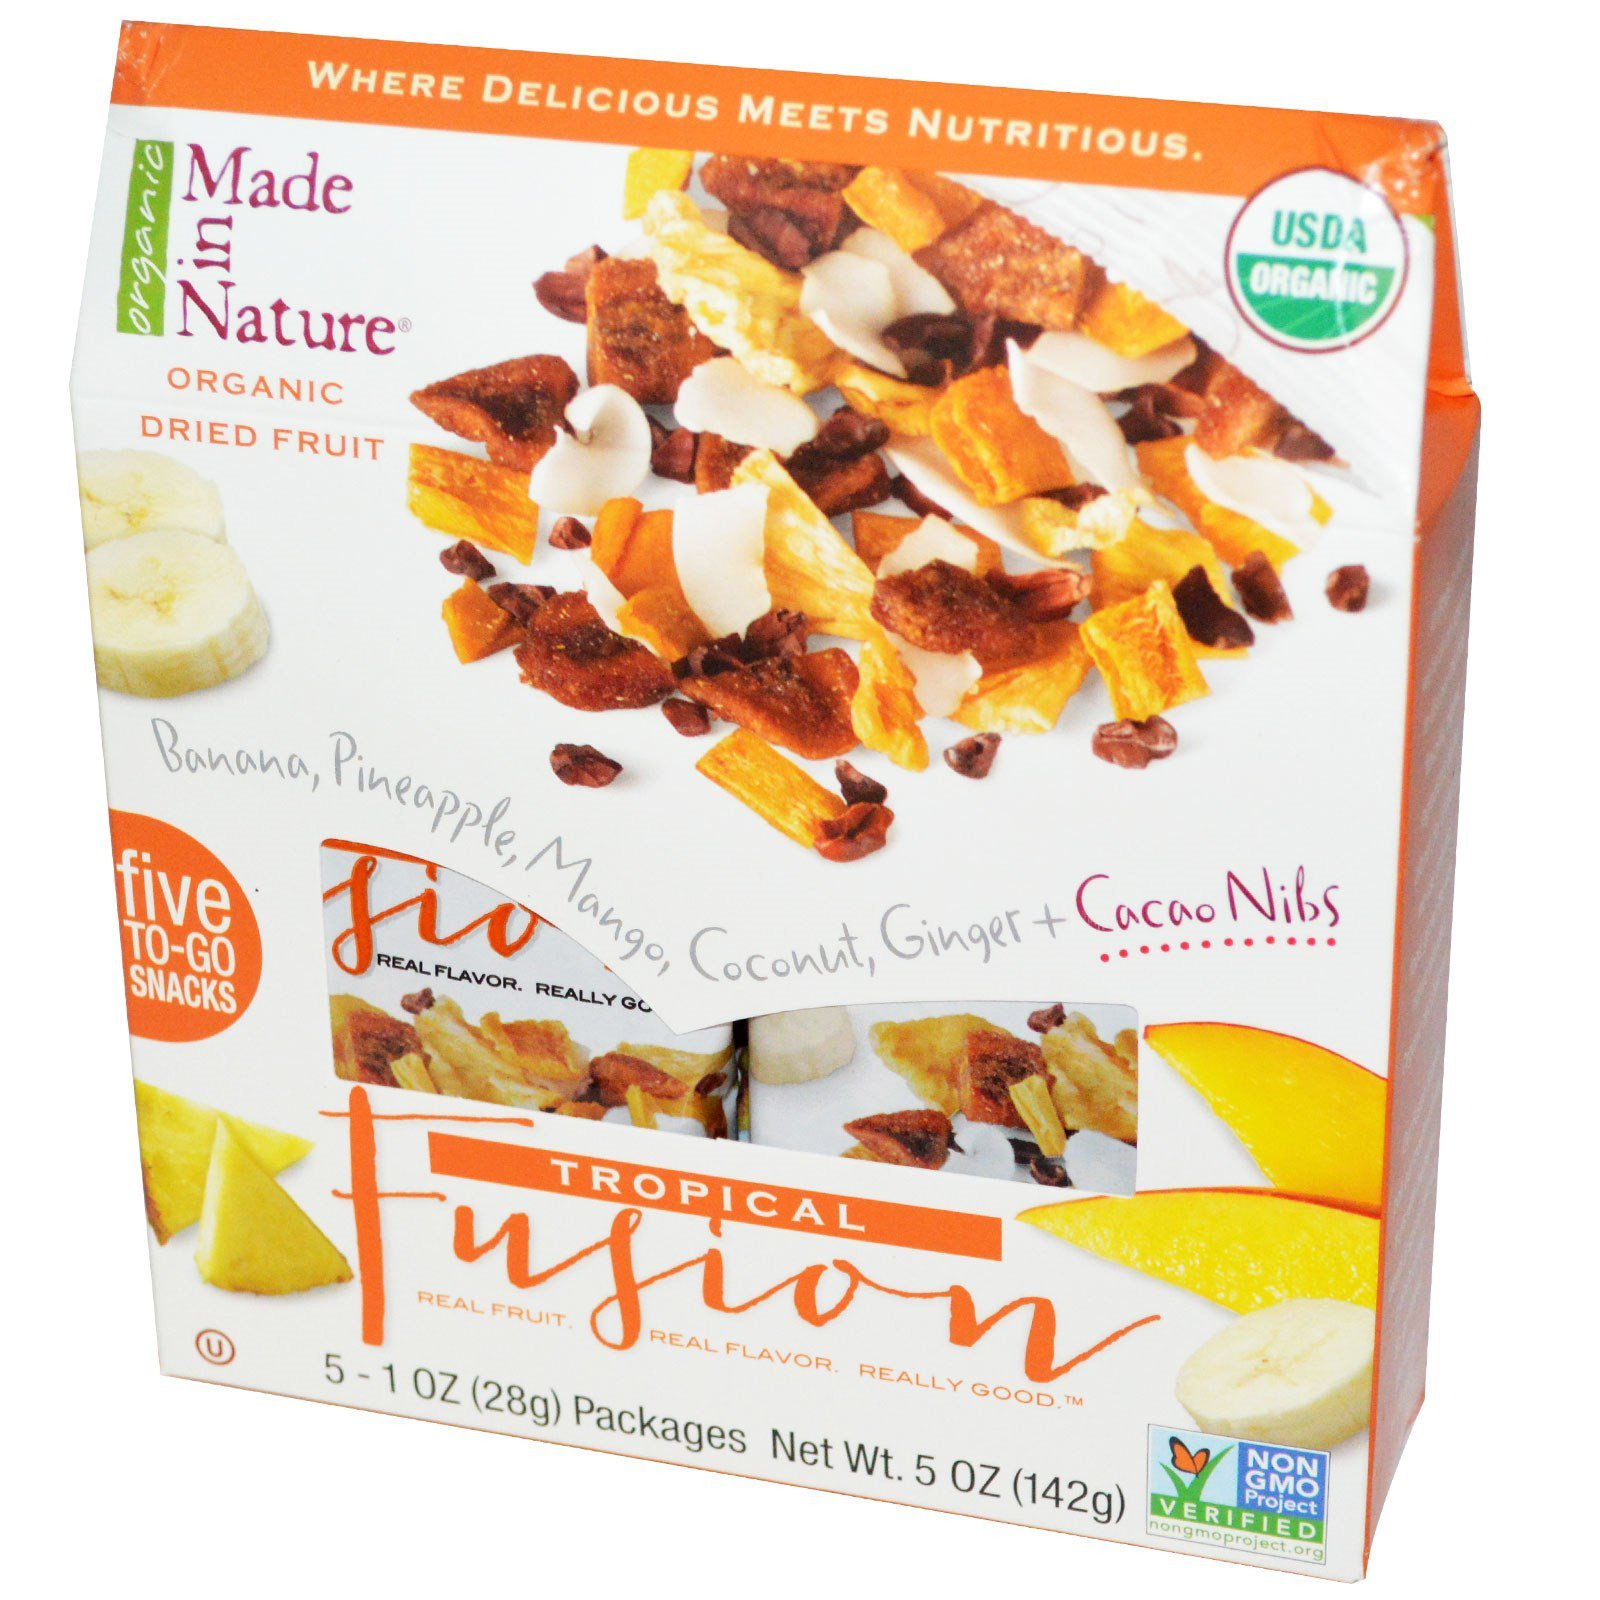 Made in Nature, Organic Dried Fruit, Tropical Fusion, 5 упаковок, 28 г каждая